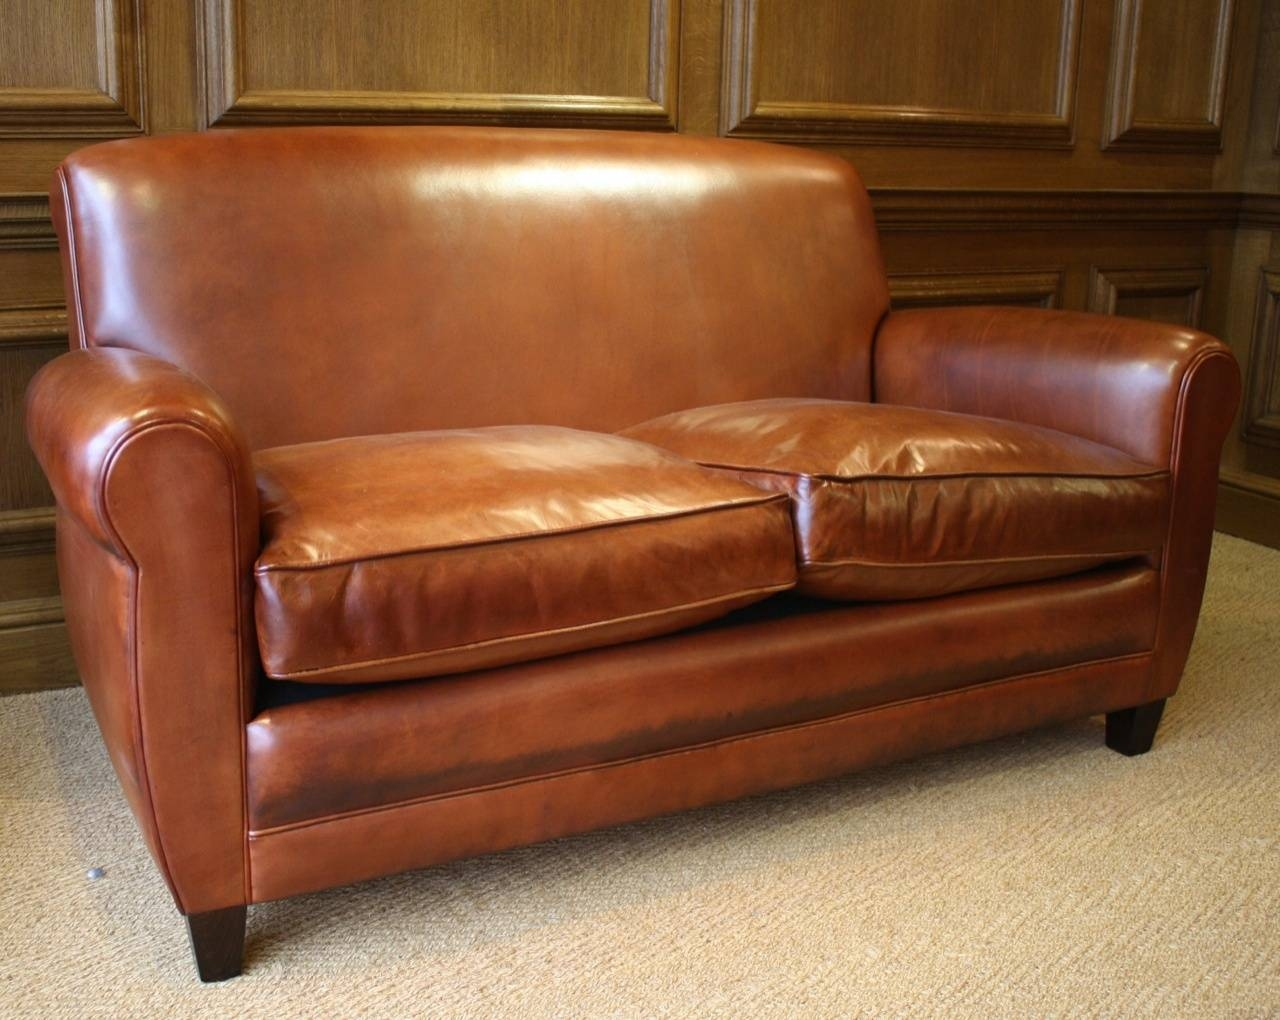 French Leather Sofa, Siege En Cuire, Siege Francais, 20Th Century Pertaining To Caramel Leather Sofas (View 5 of 15)